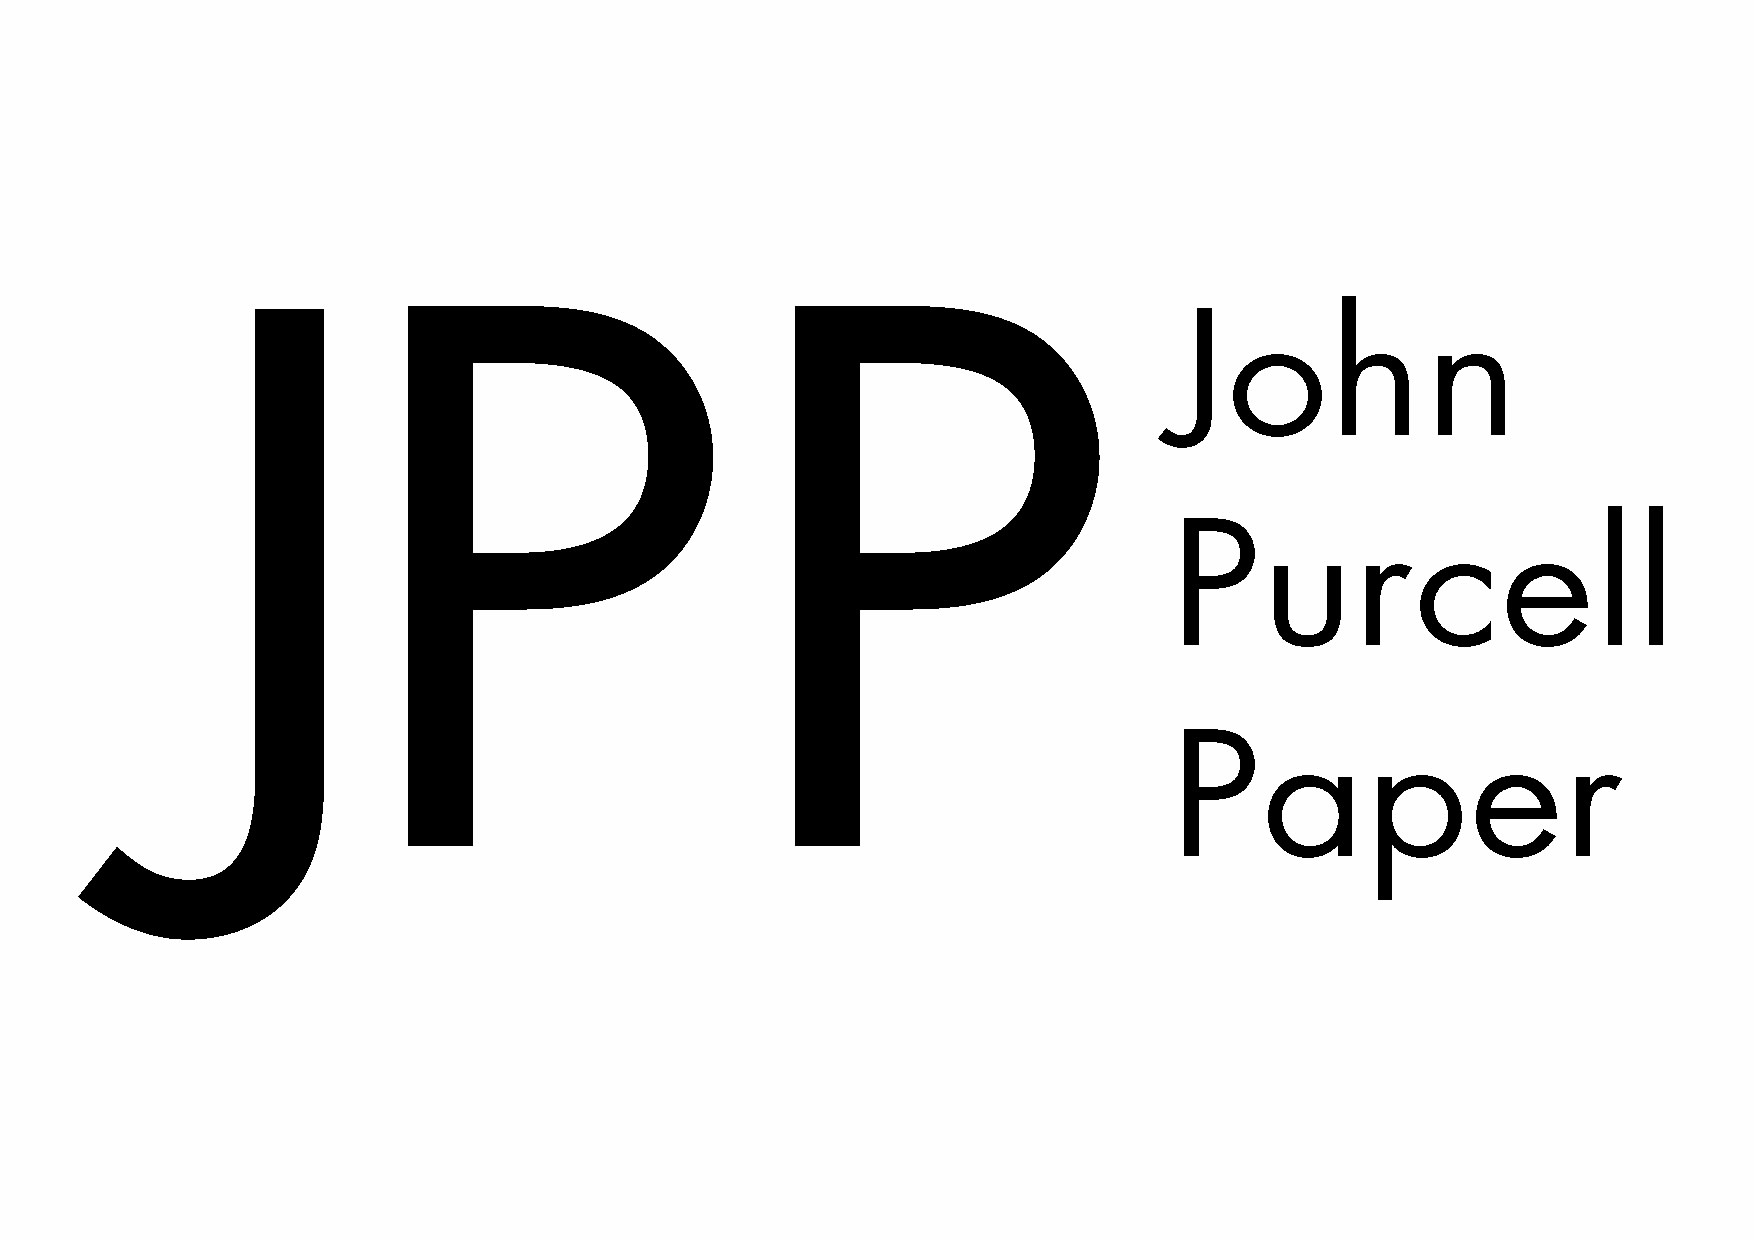 John Purcell Paper Prize